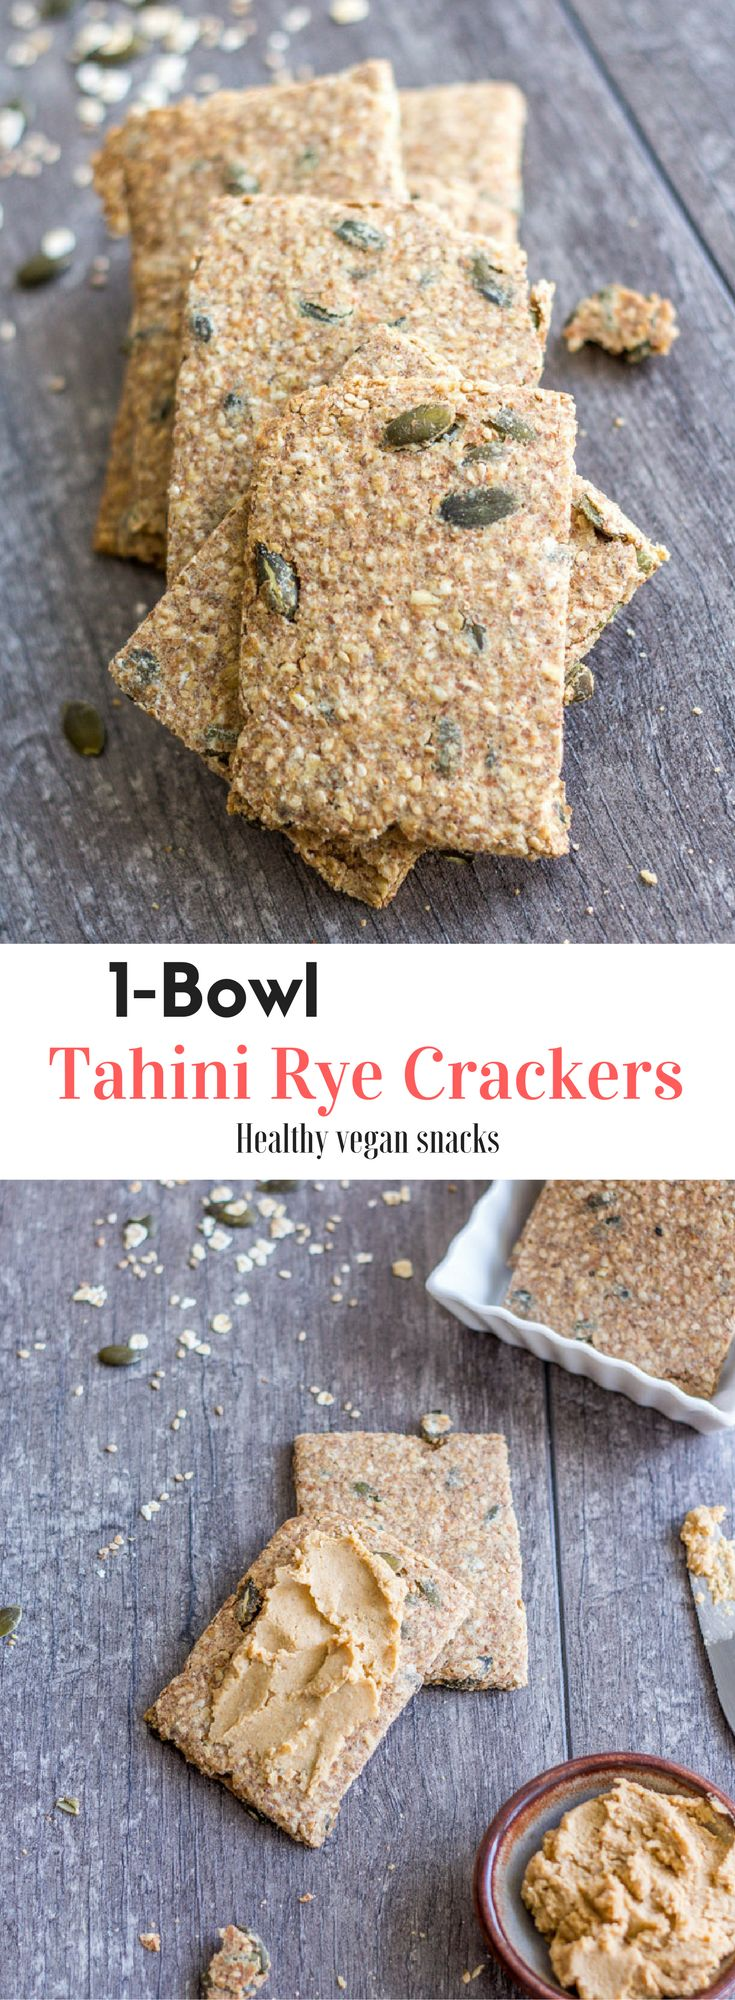 1-Bowl Tahini Rye Crackers made from rye flour, oats, seeds, and tahini. They're easy, quick, healthy, and tasty. A great vegan snack! Healthy vegan recipes | healthy  | vegan | snack | dessert | recipes | vegetarian | The Mostly Healthy